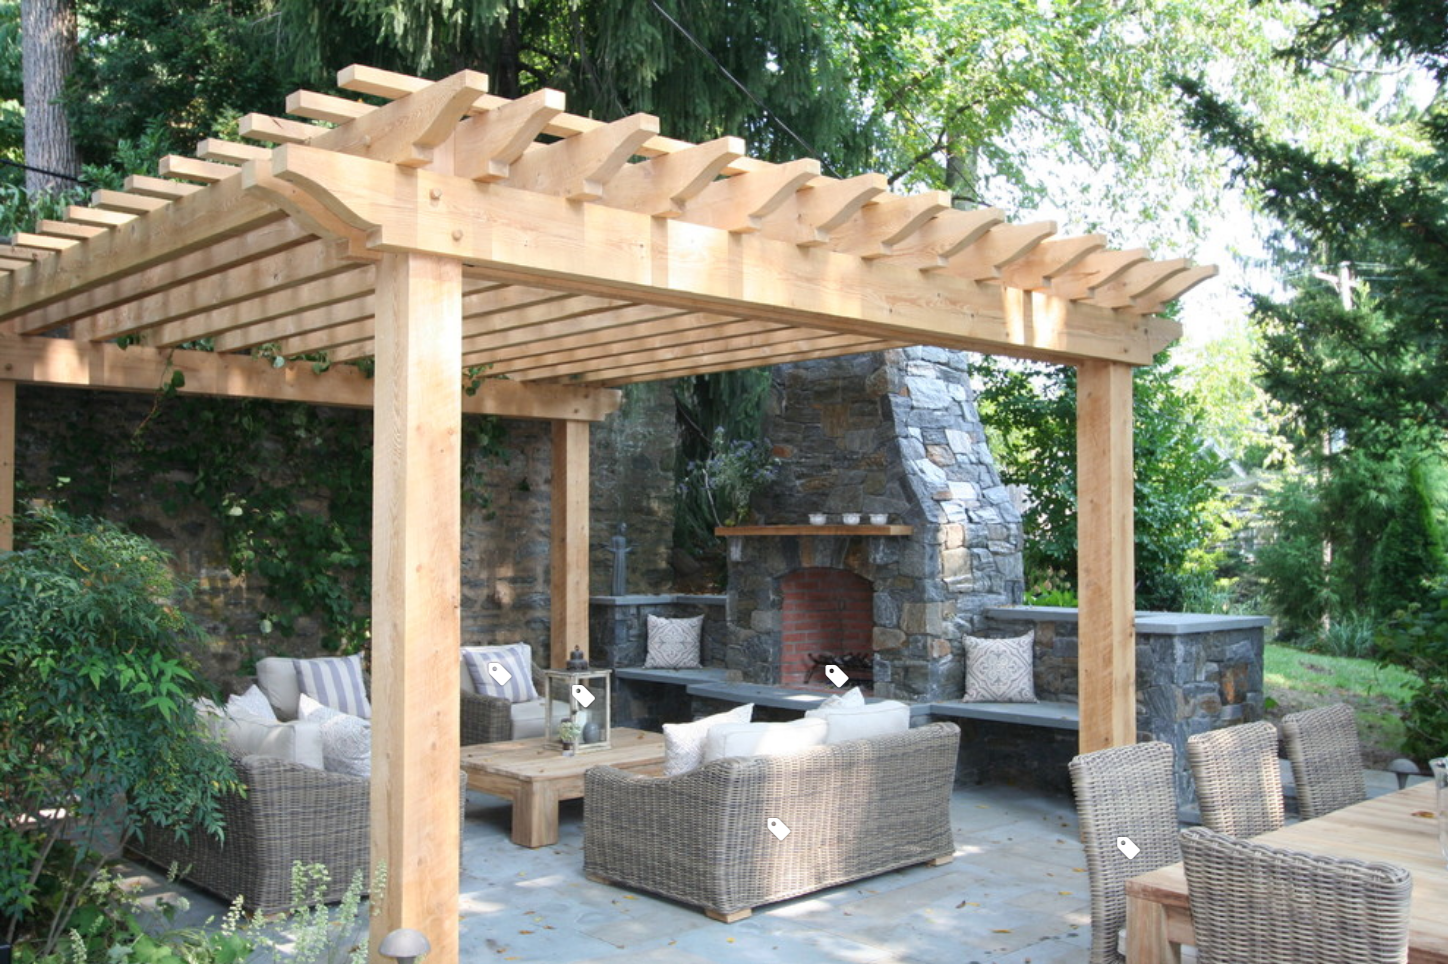 Outdoor Fireplace Www Landscapedesignguy Com Outdoor Fireplace Backyard Patio Backyard Pergola